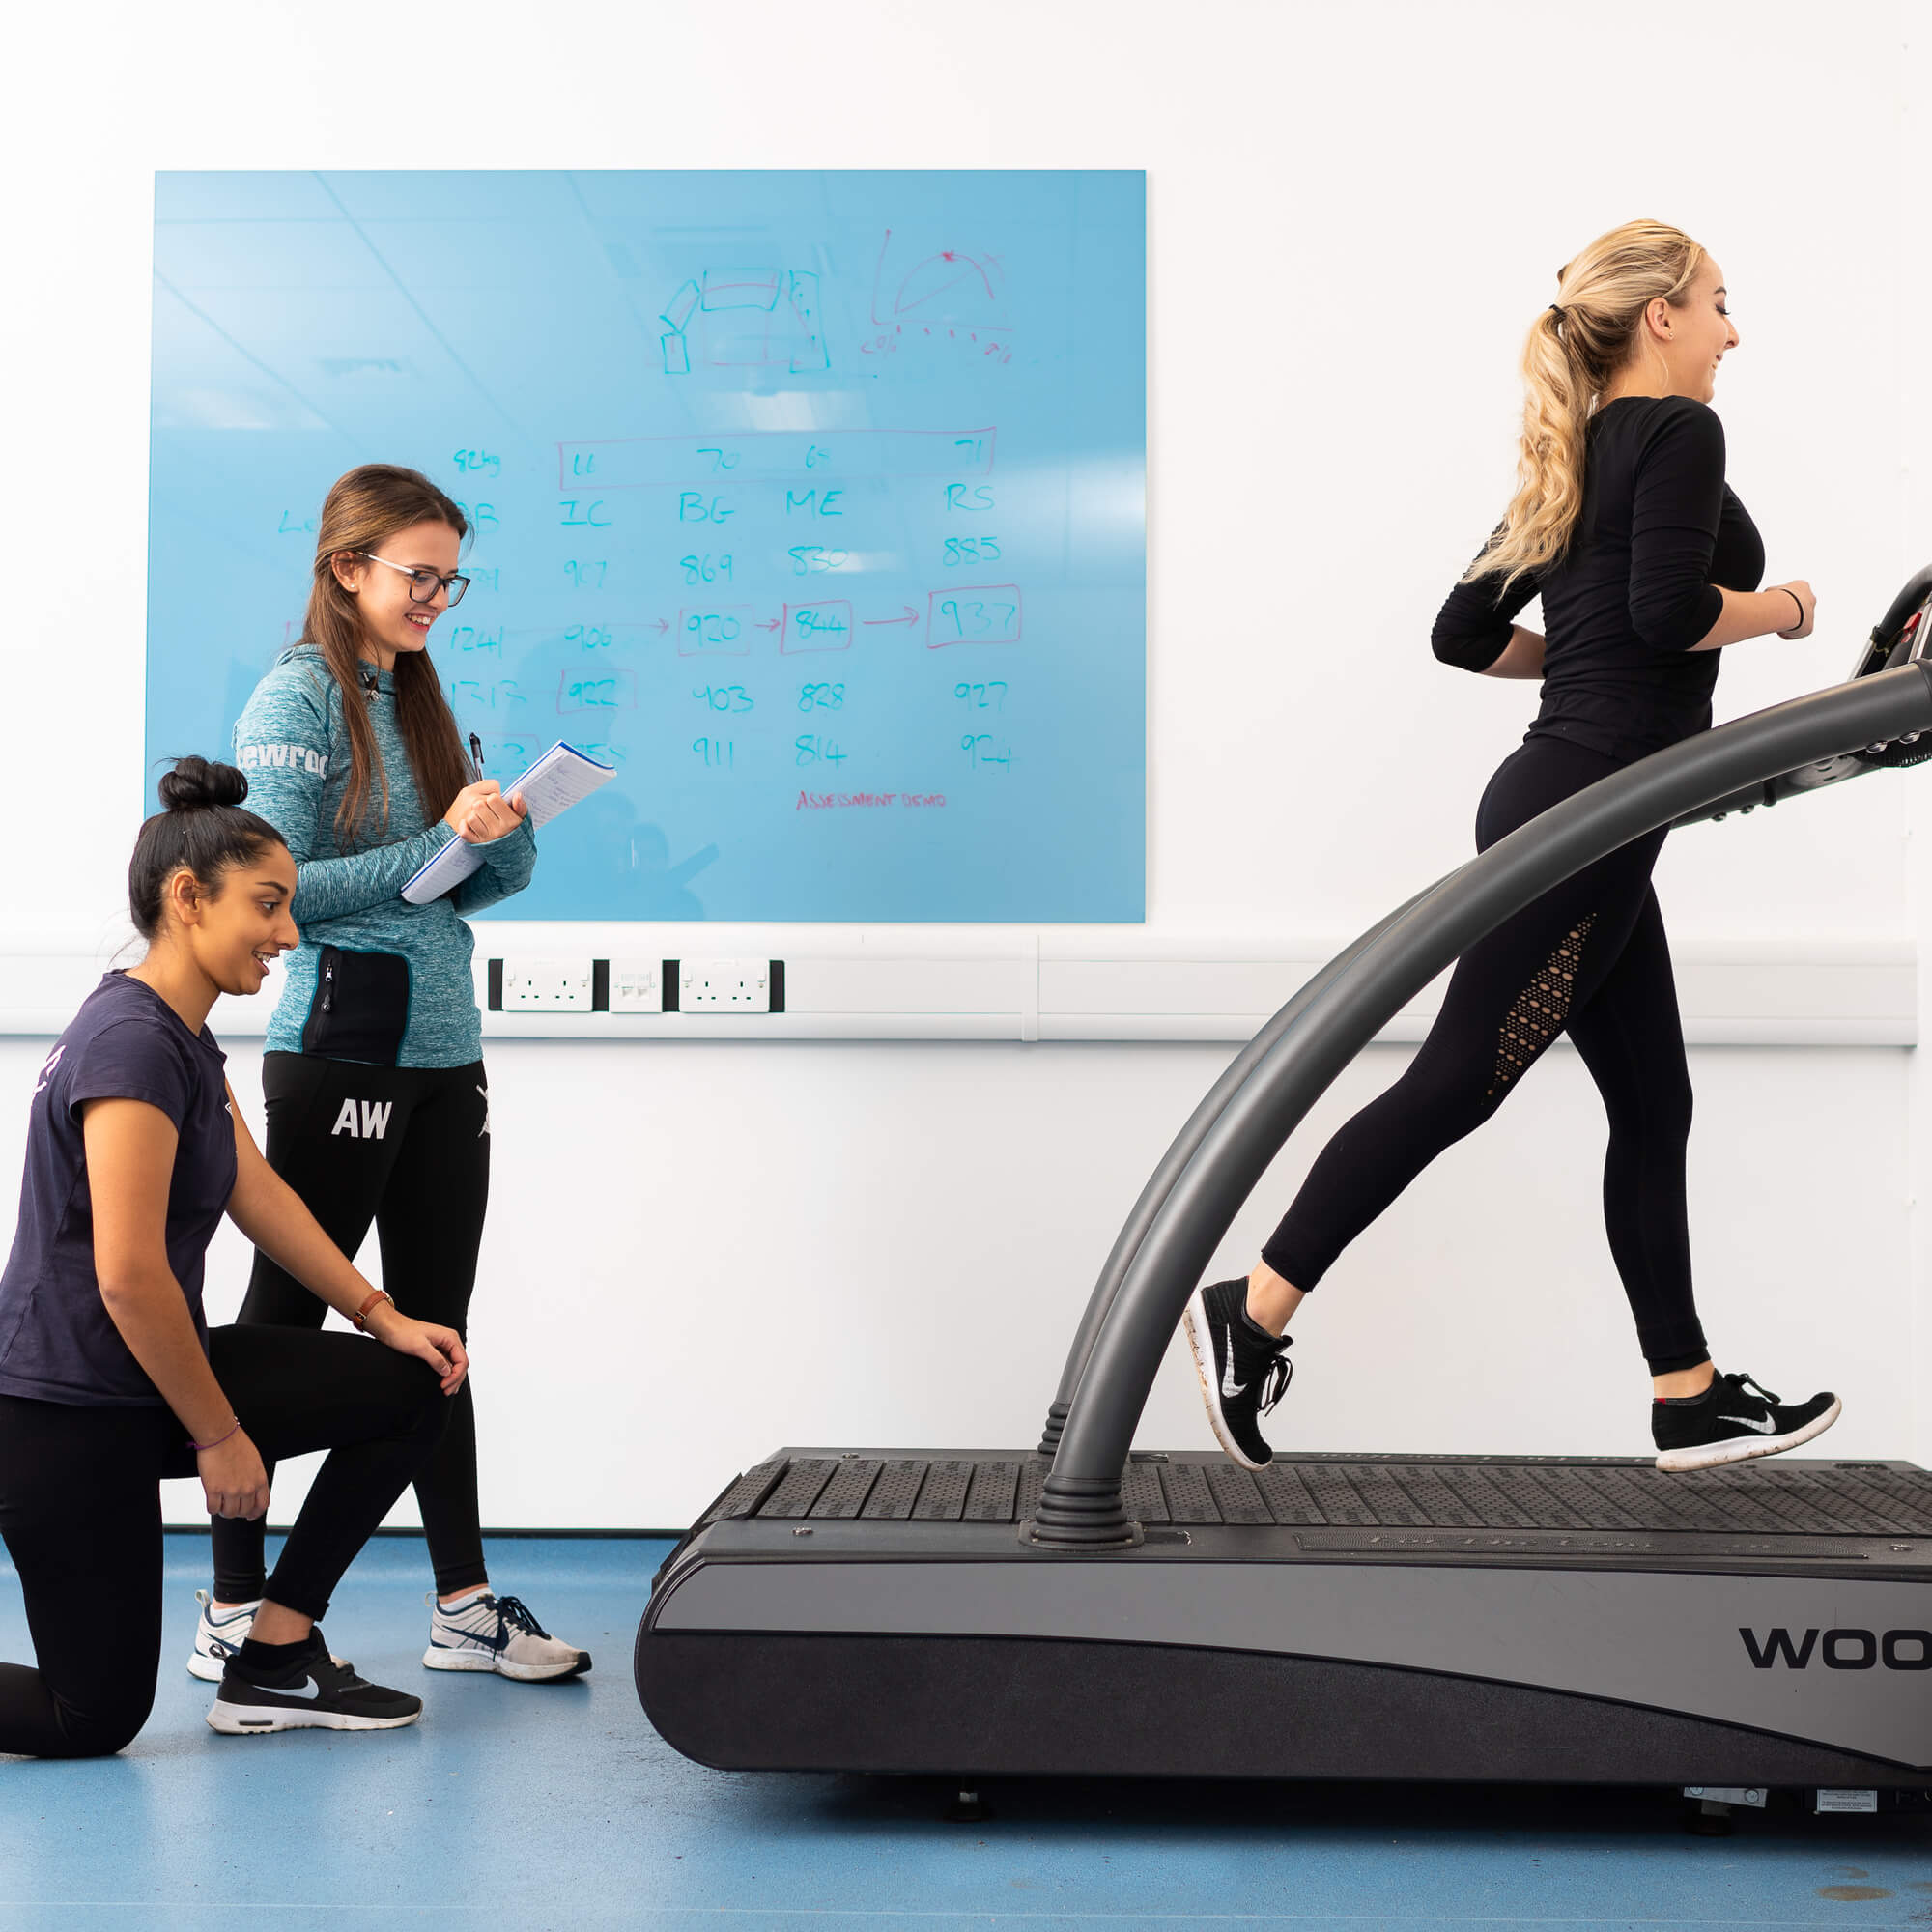 A blonde lady running on the treadmill and 2 people assessing her running